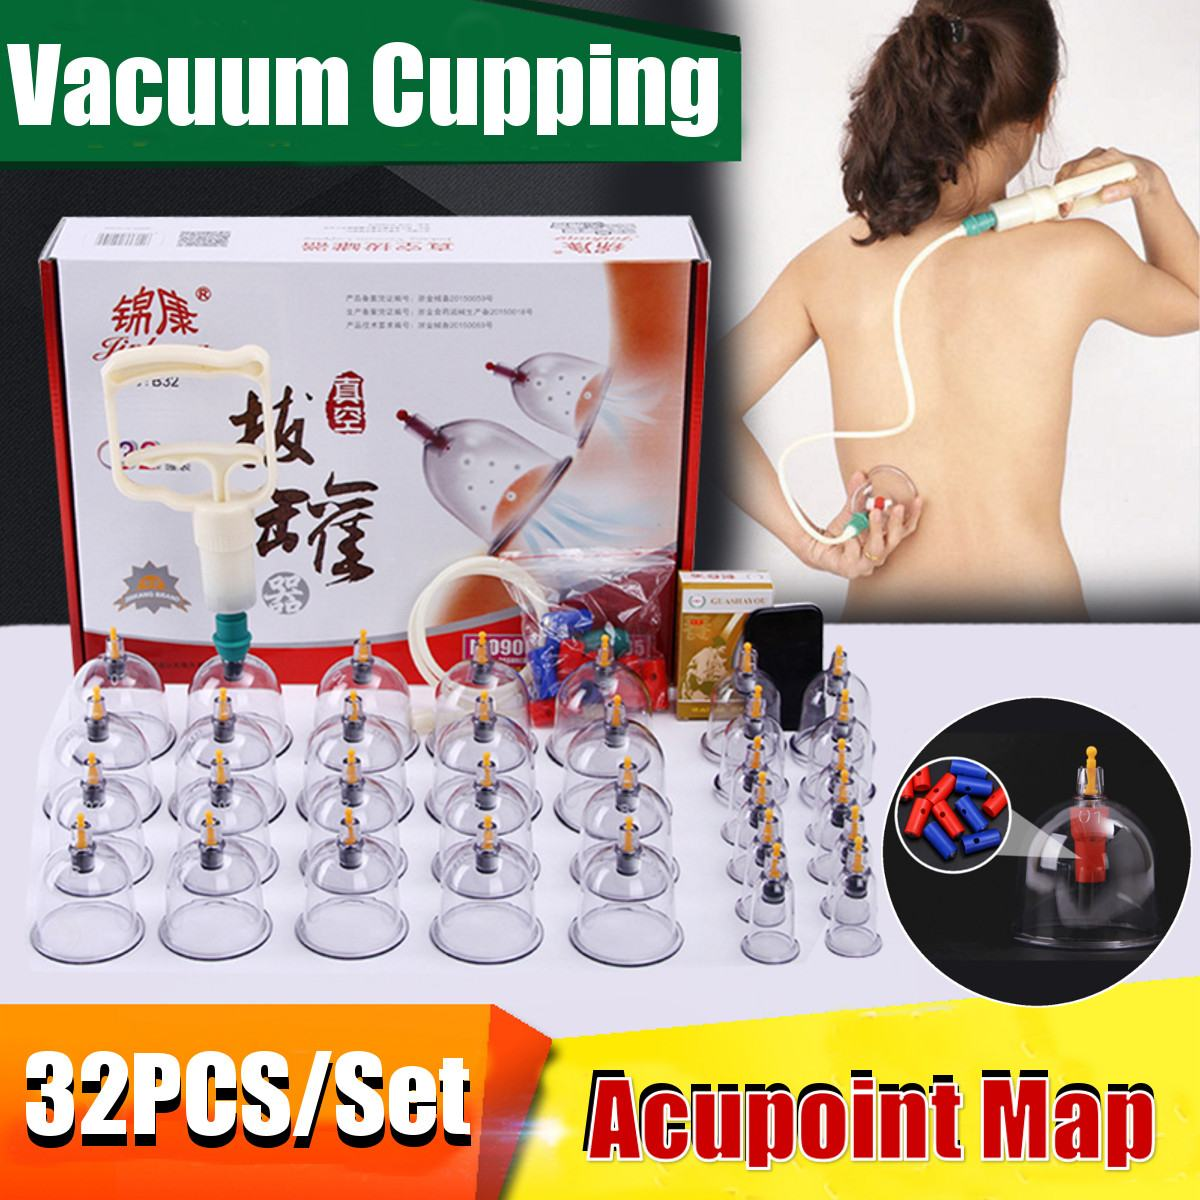 Vacuum-Cupping-Kit Cups Massagers Curve-Suction-Pumps Chinese Cans 32 Relax Pull-Out title=